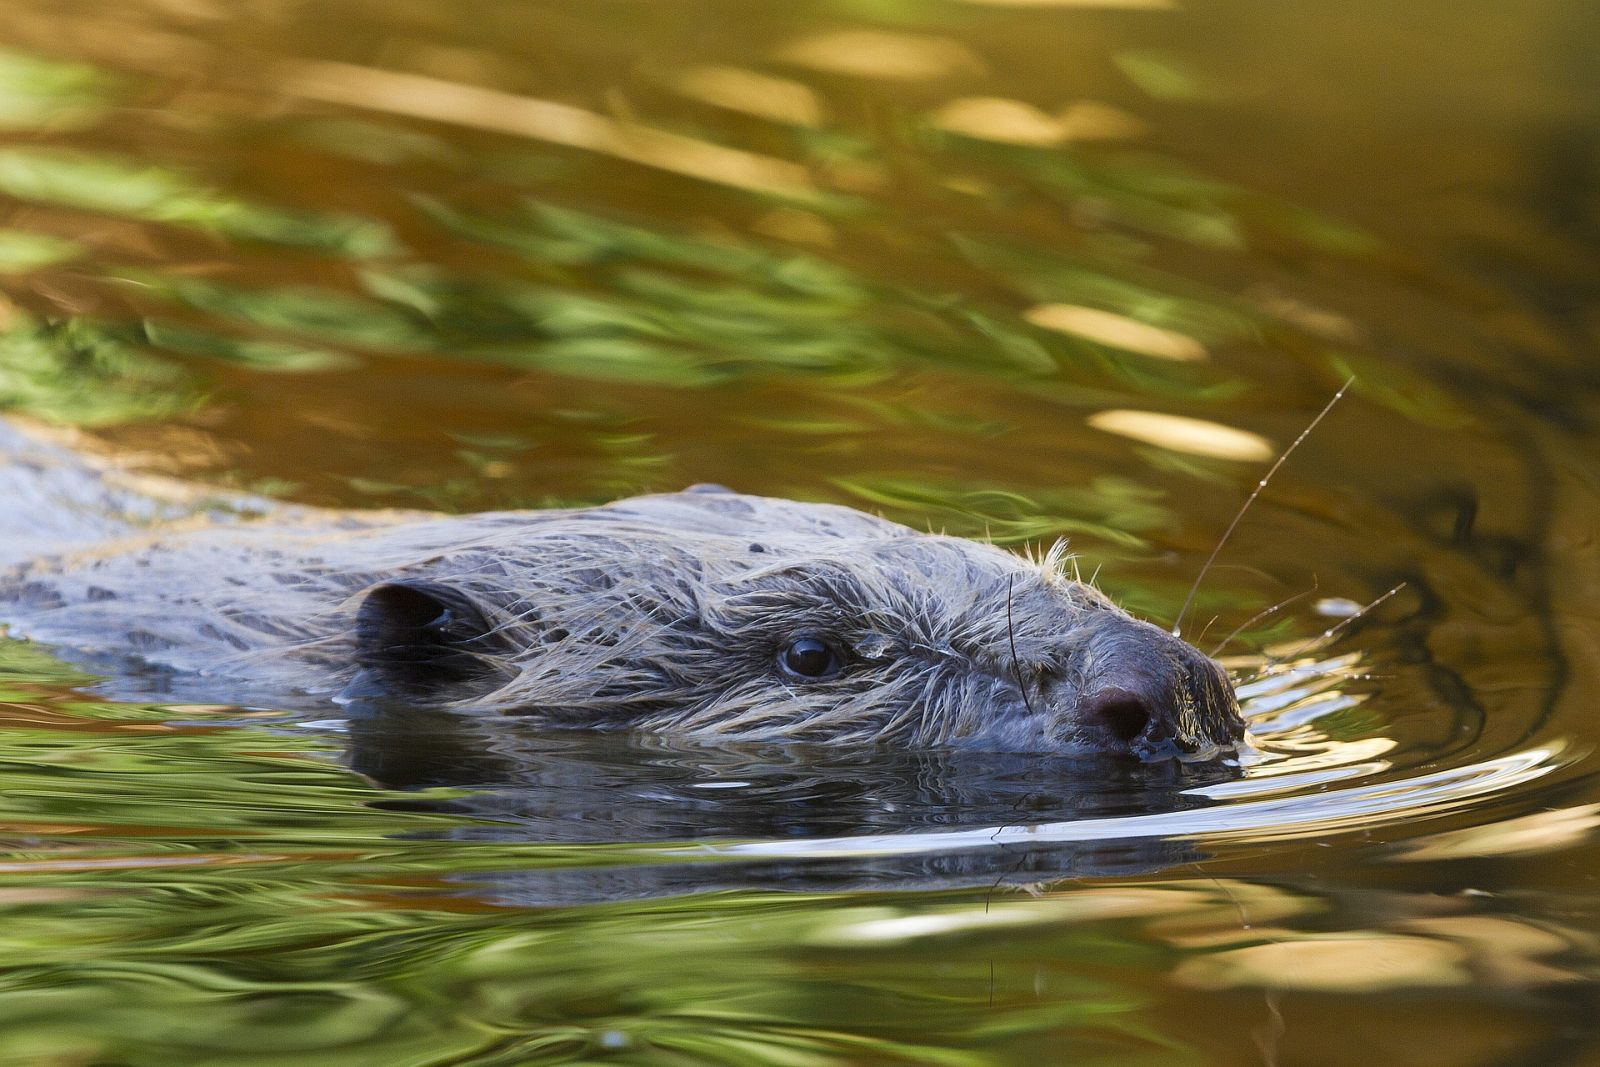 Could we see beavers return to National Parks?